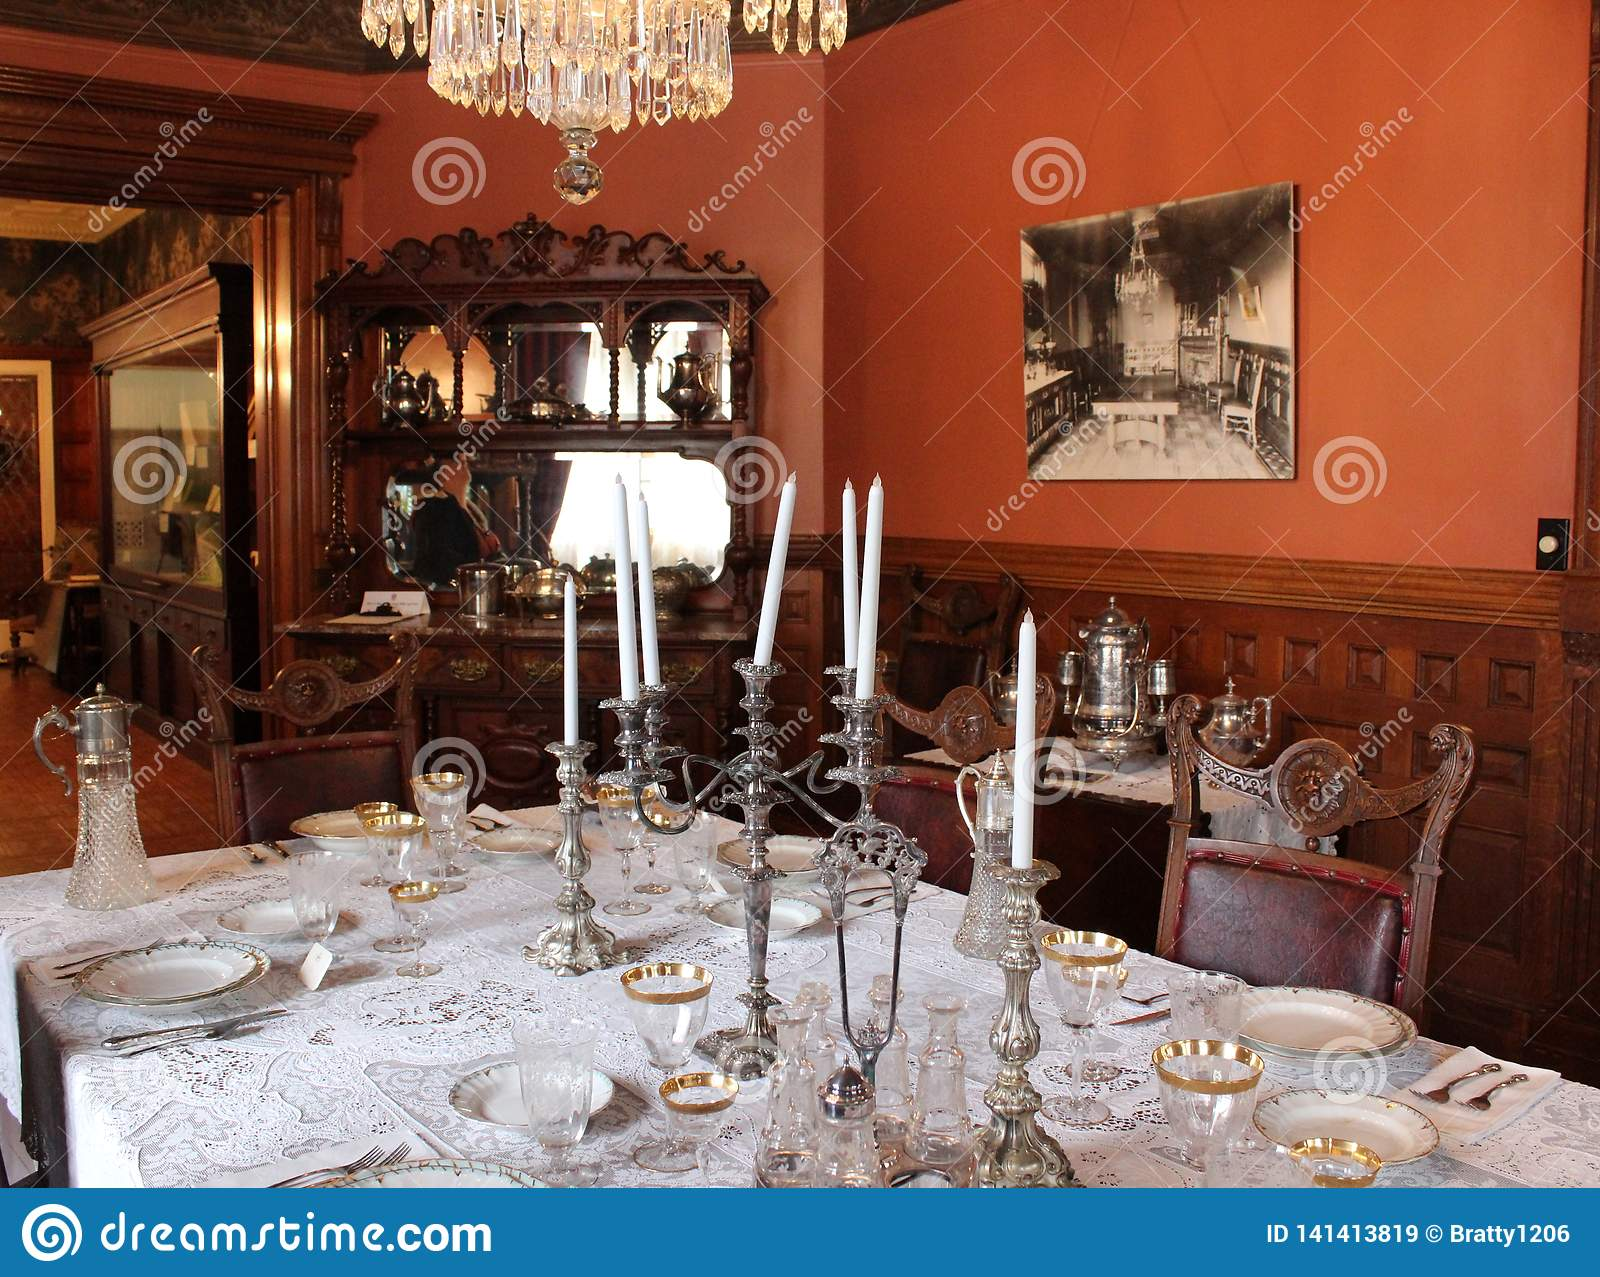 Haunted House Dining Photos Free Royalty Free Stock Photos From Dreamstime